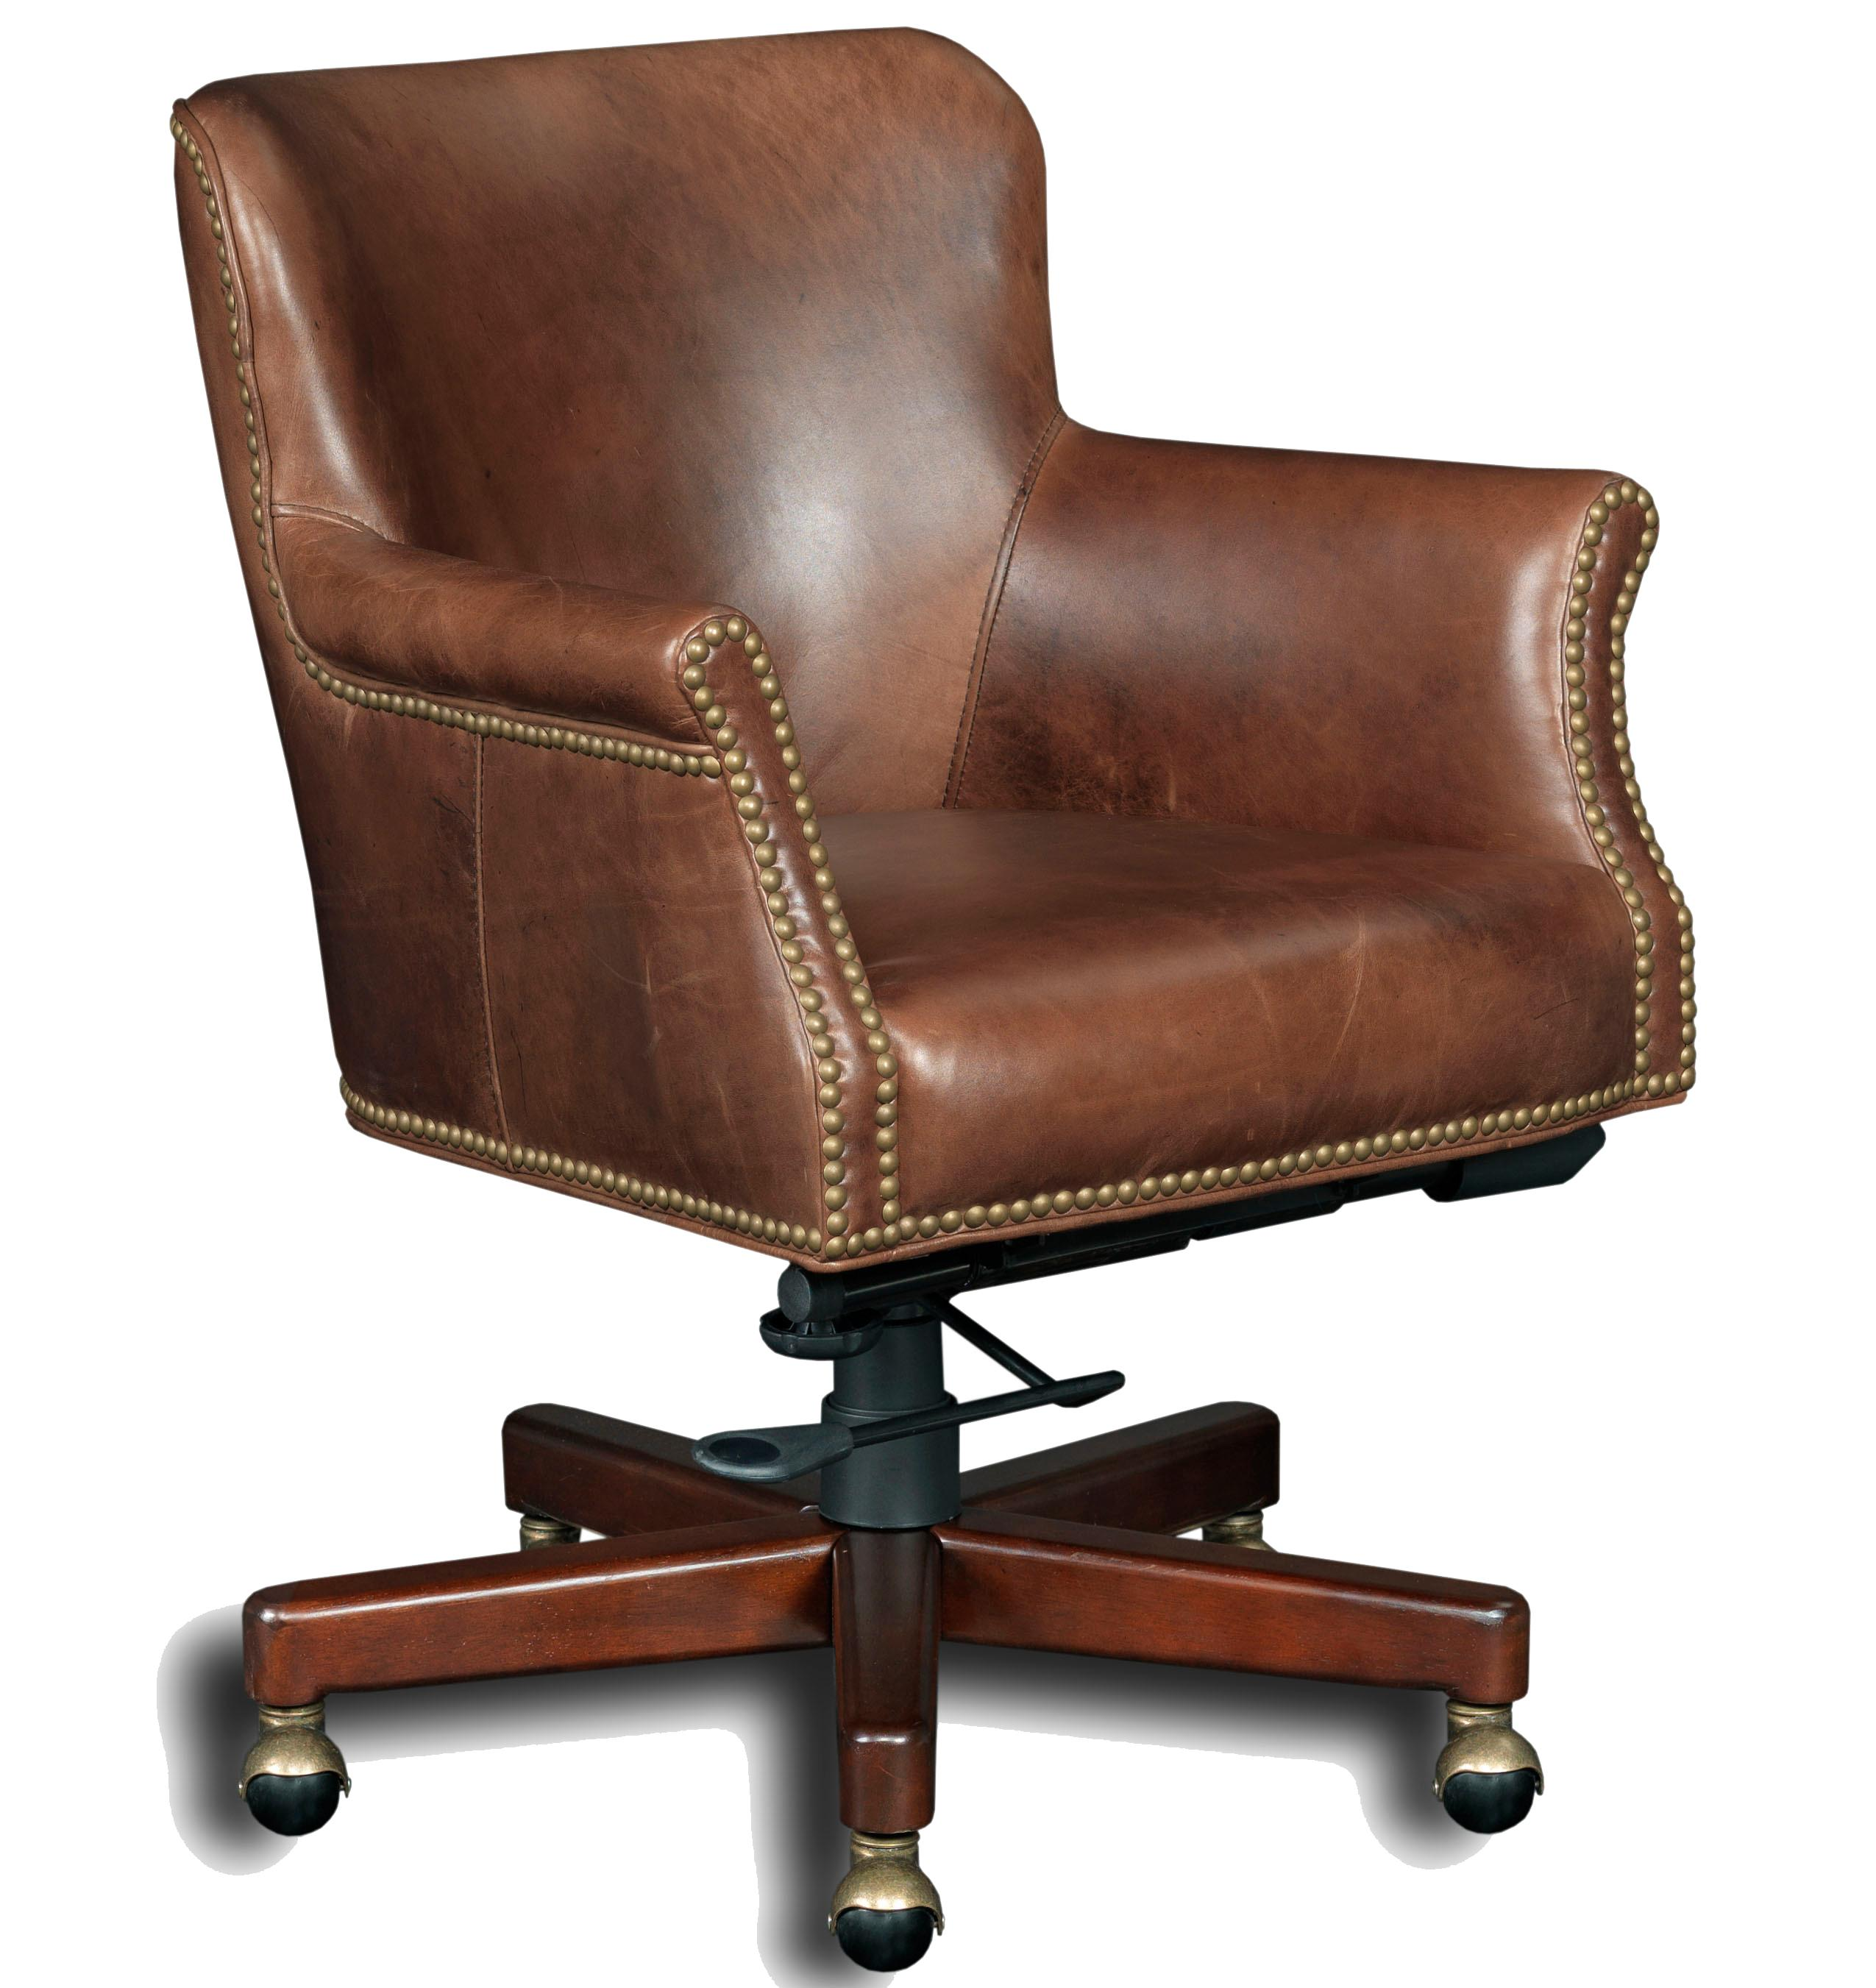 Executive Seating Executive Tilt Swivel Chair by Hooker Furniture at Miller Waldrop Furniture and Decor